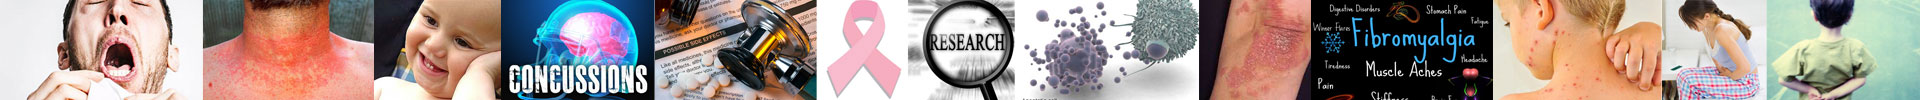 Homeopathic-Research-_-Scientific-Studies-on-HomeopathyBanner